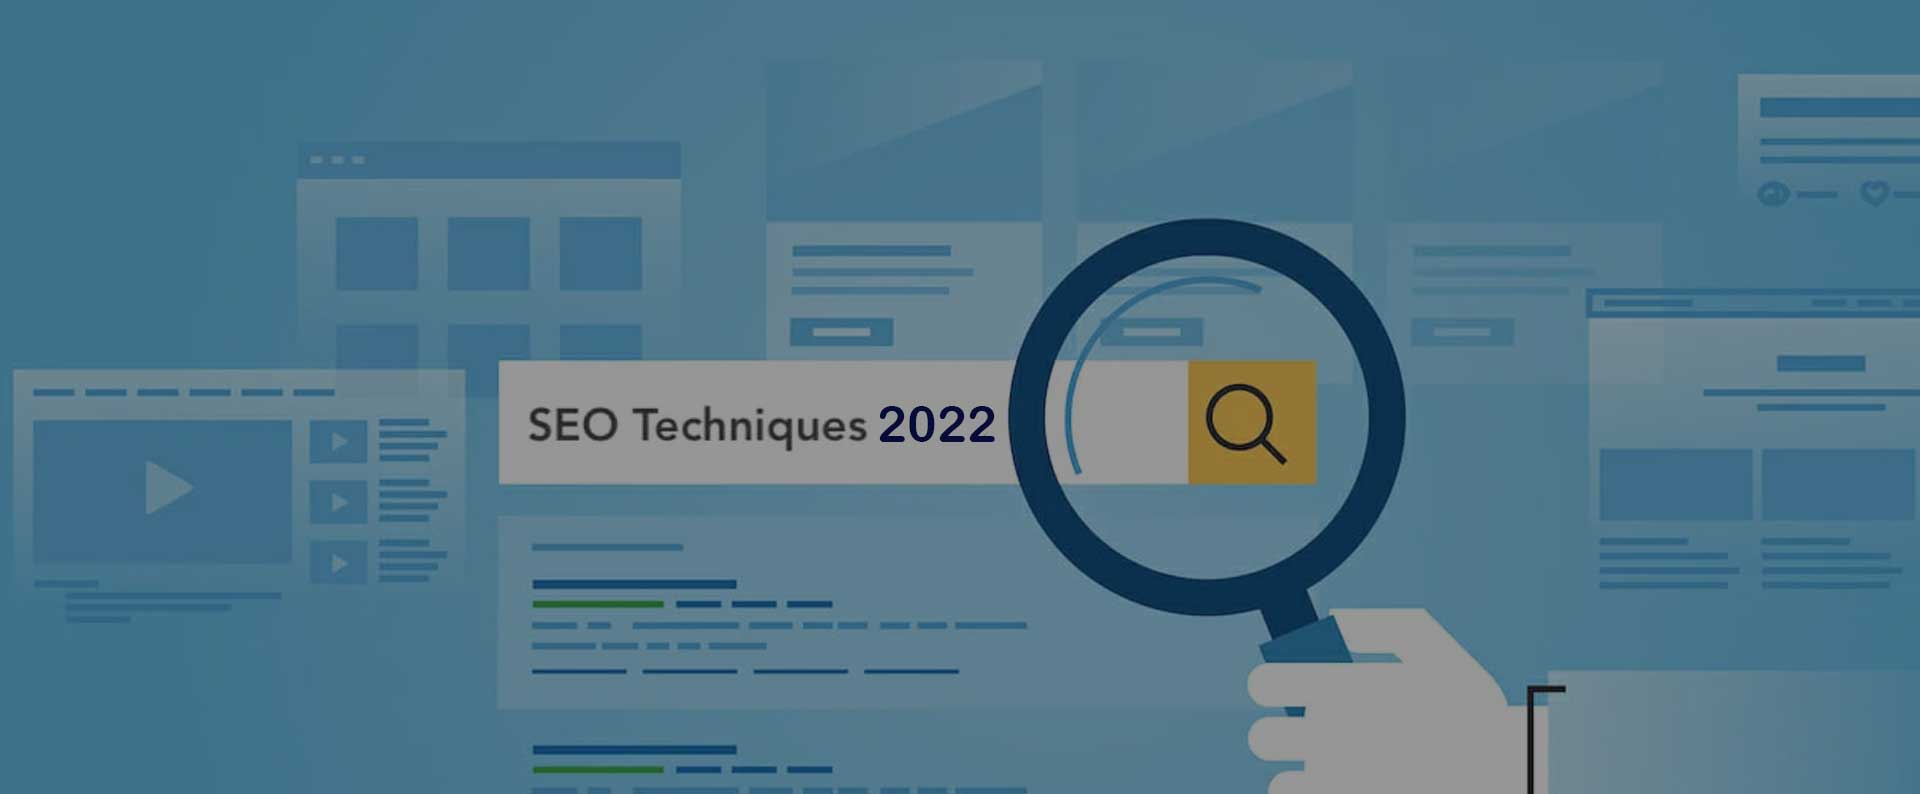 Ways to Do SEO for Small Business 2022